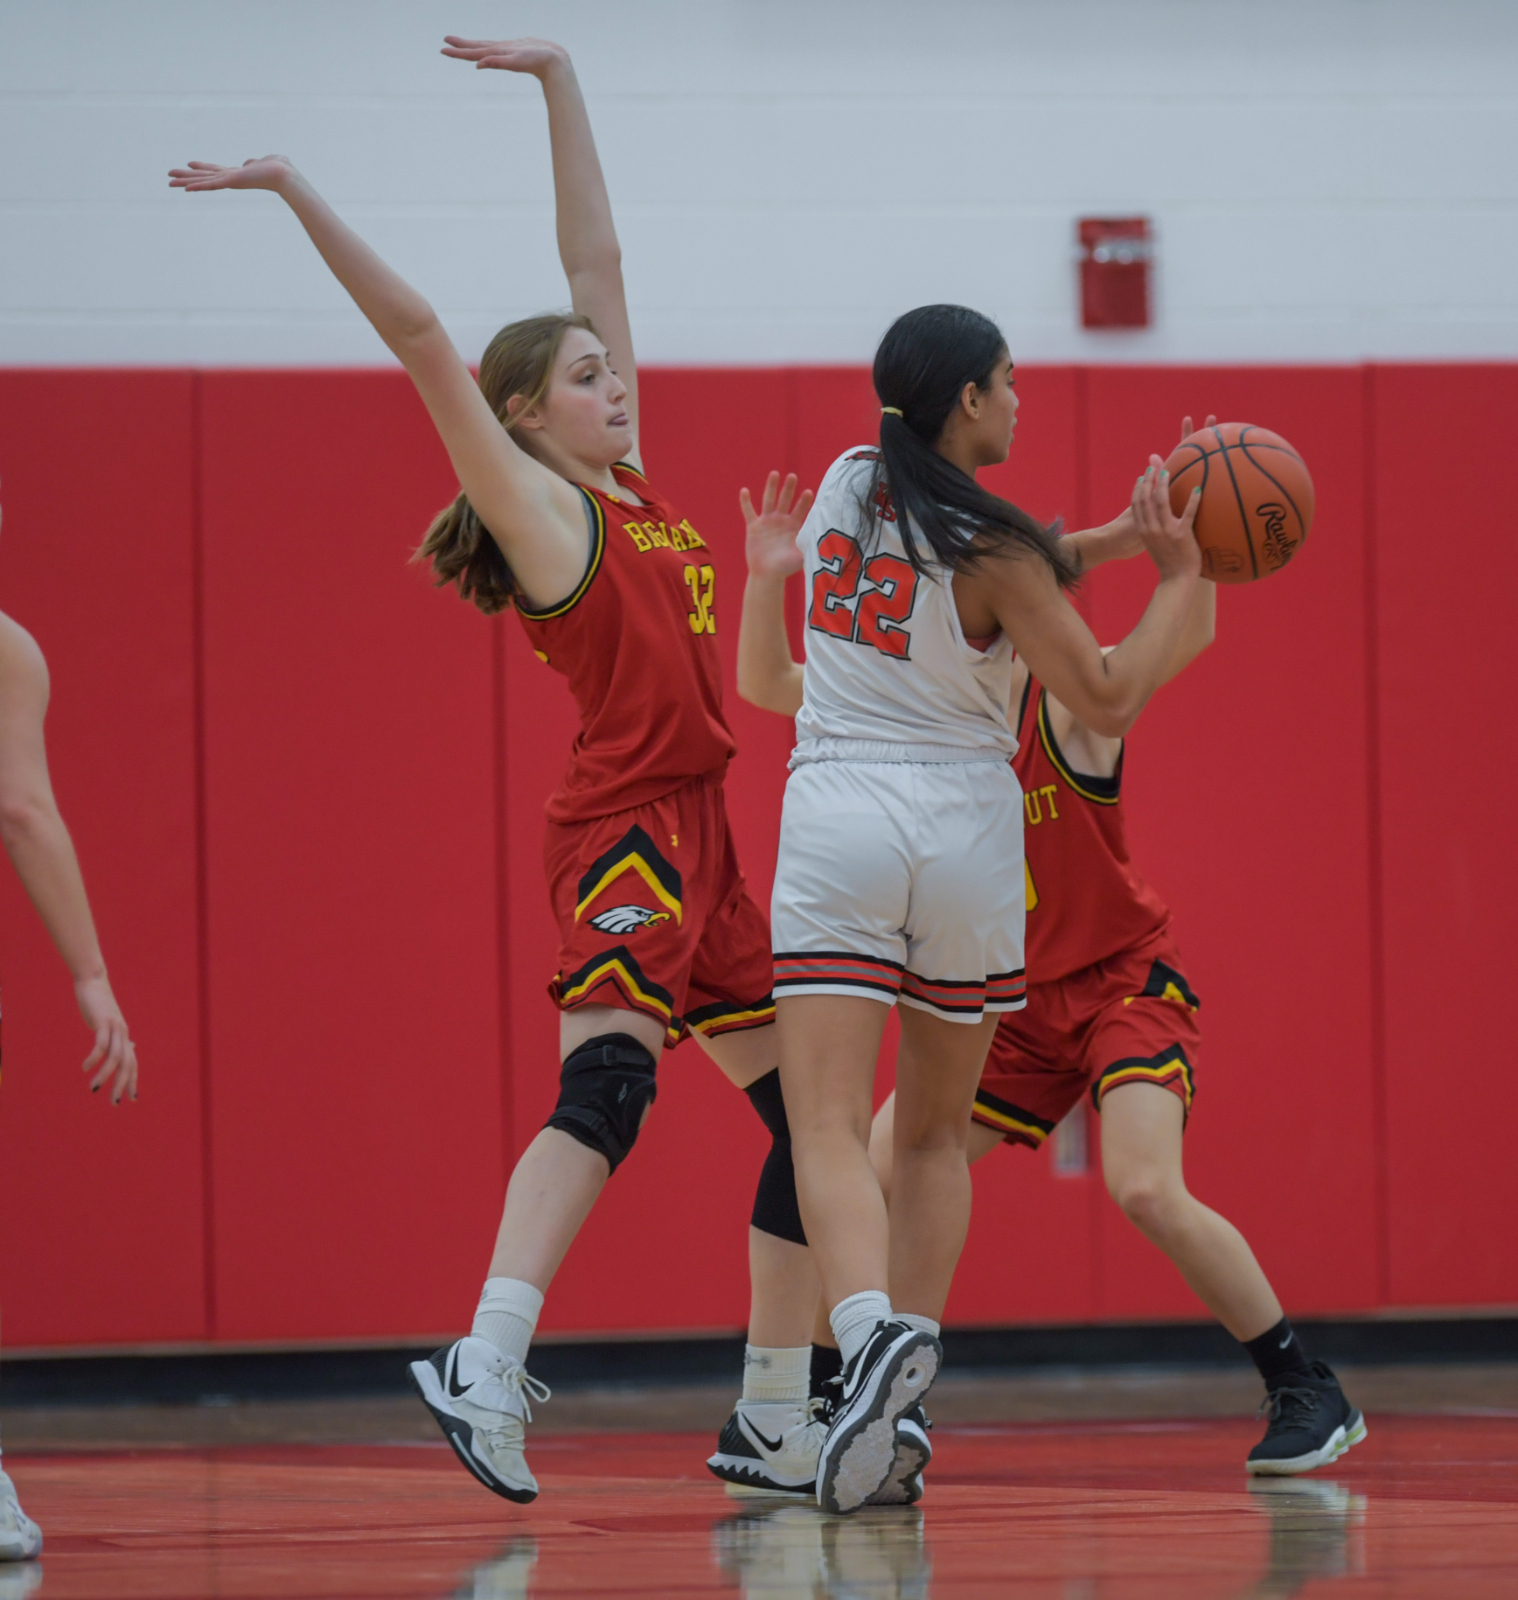 PHOTO GALLERY: Big Walnut falls to Westerville South 57-42